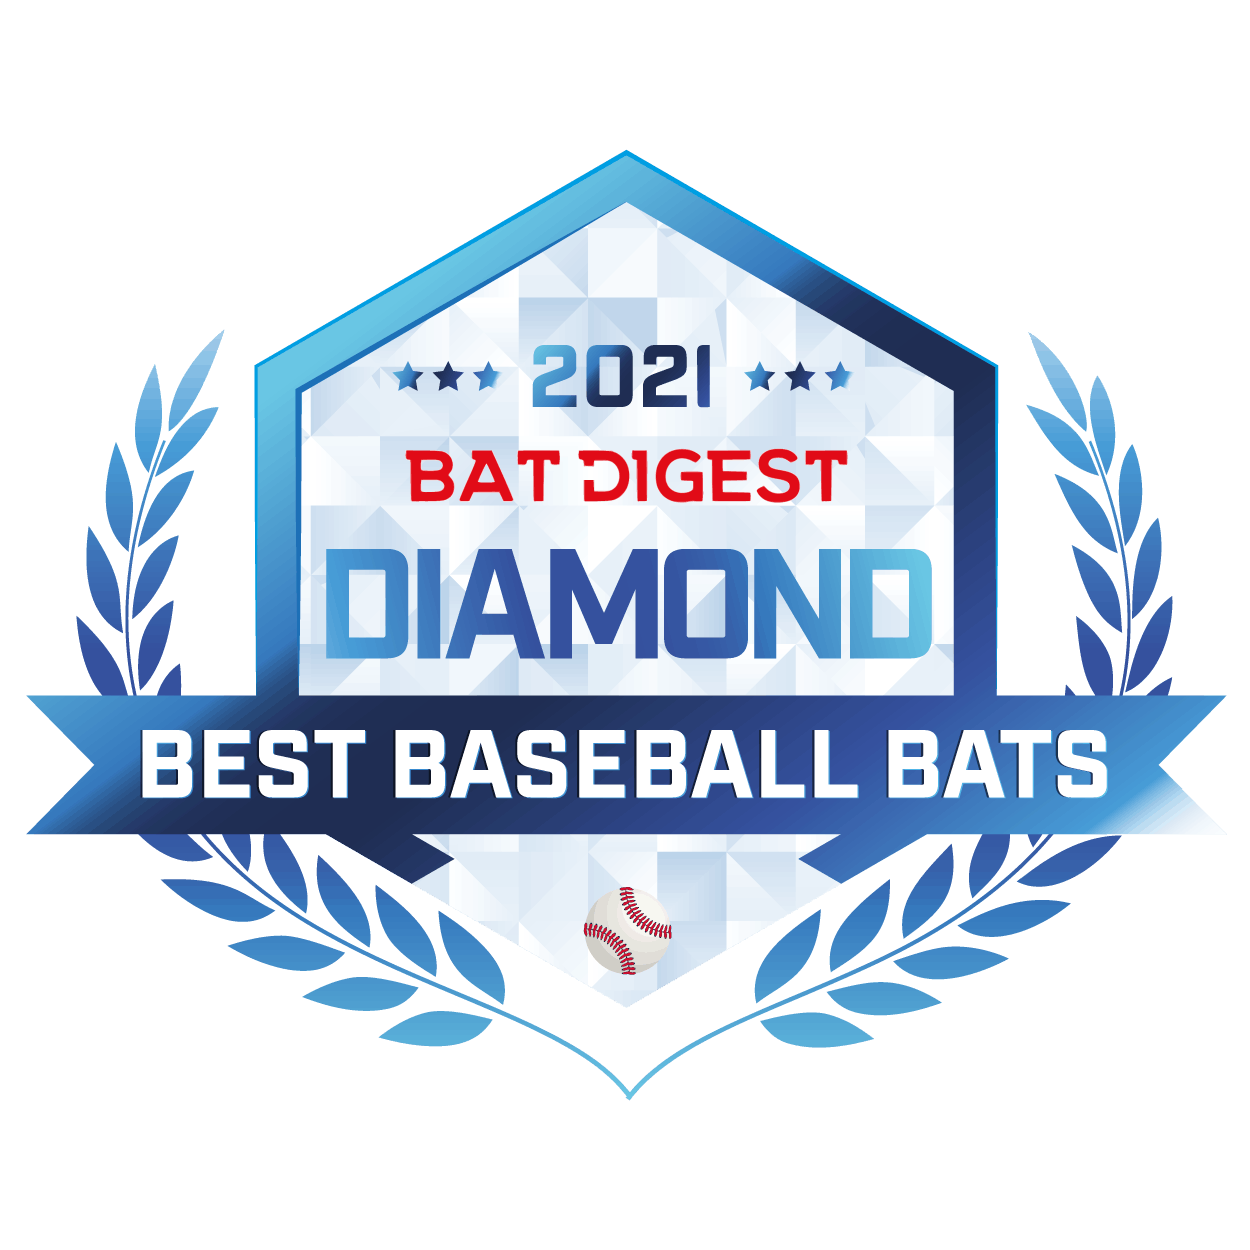 best bats diamond award